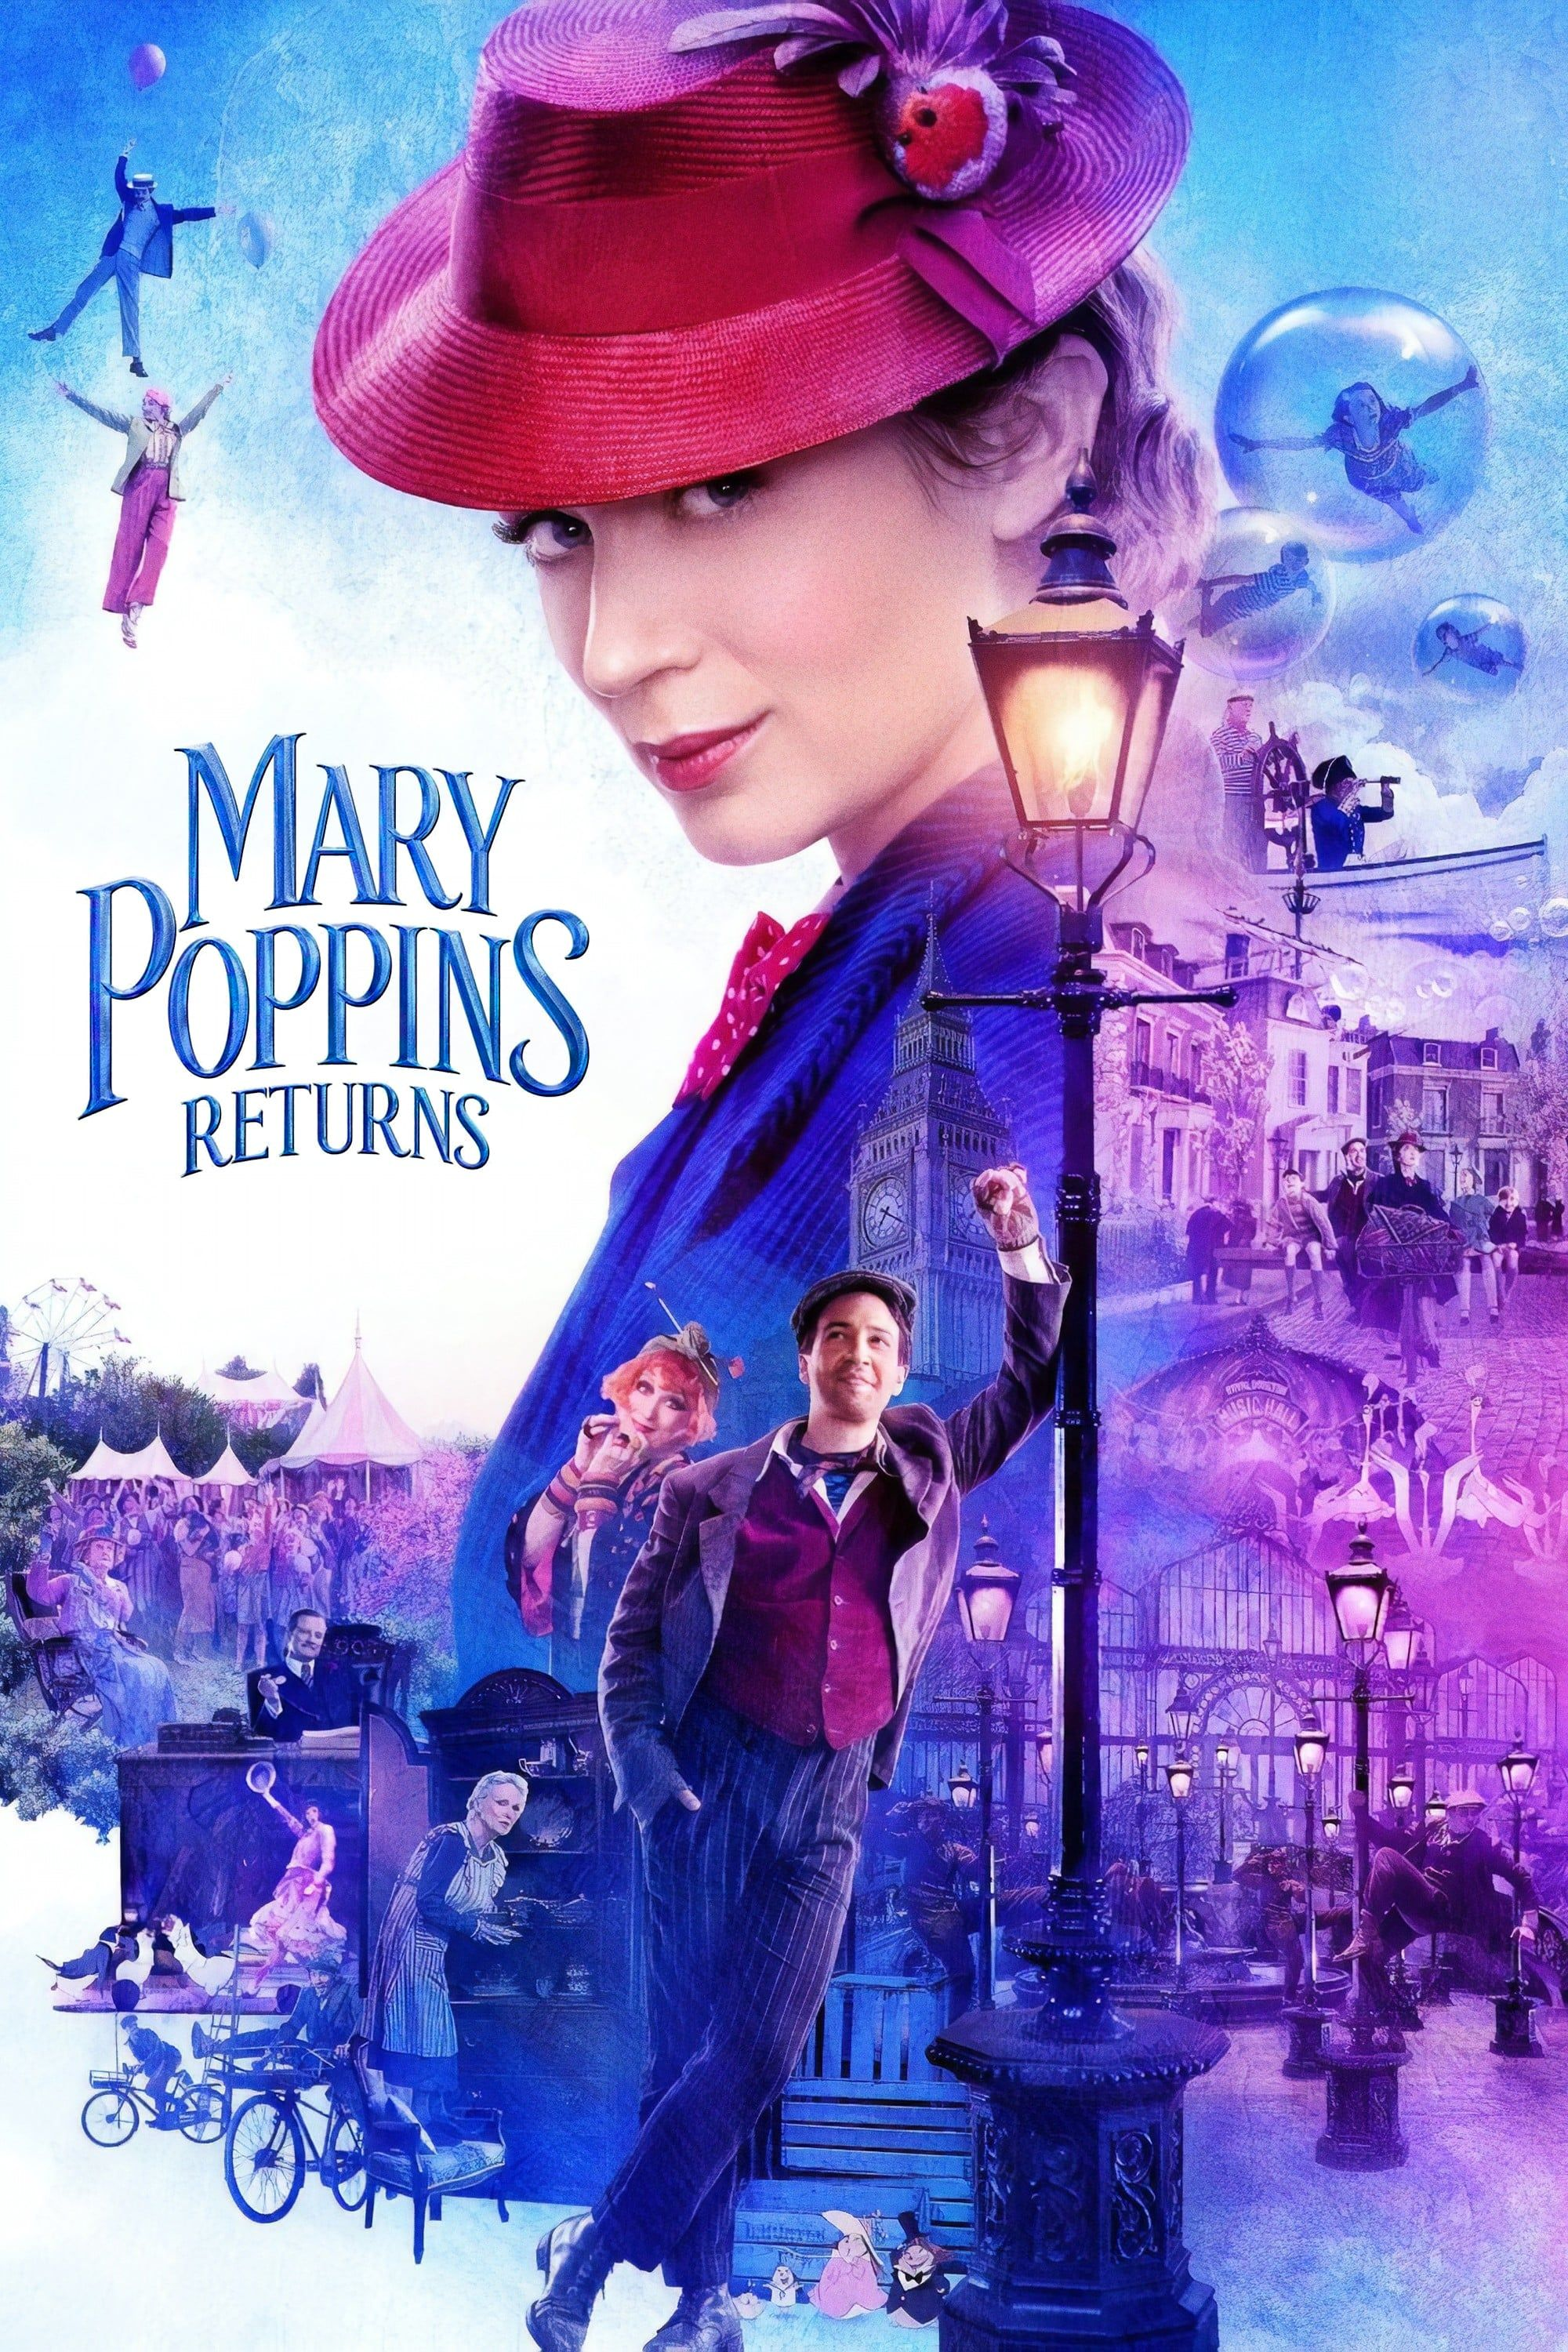 Mary Poppins Returns (2018) free complets Téléchargement